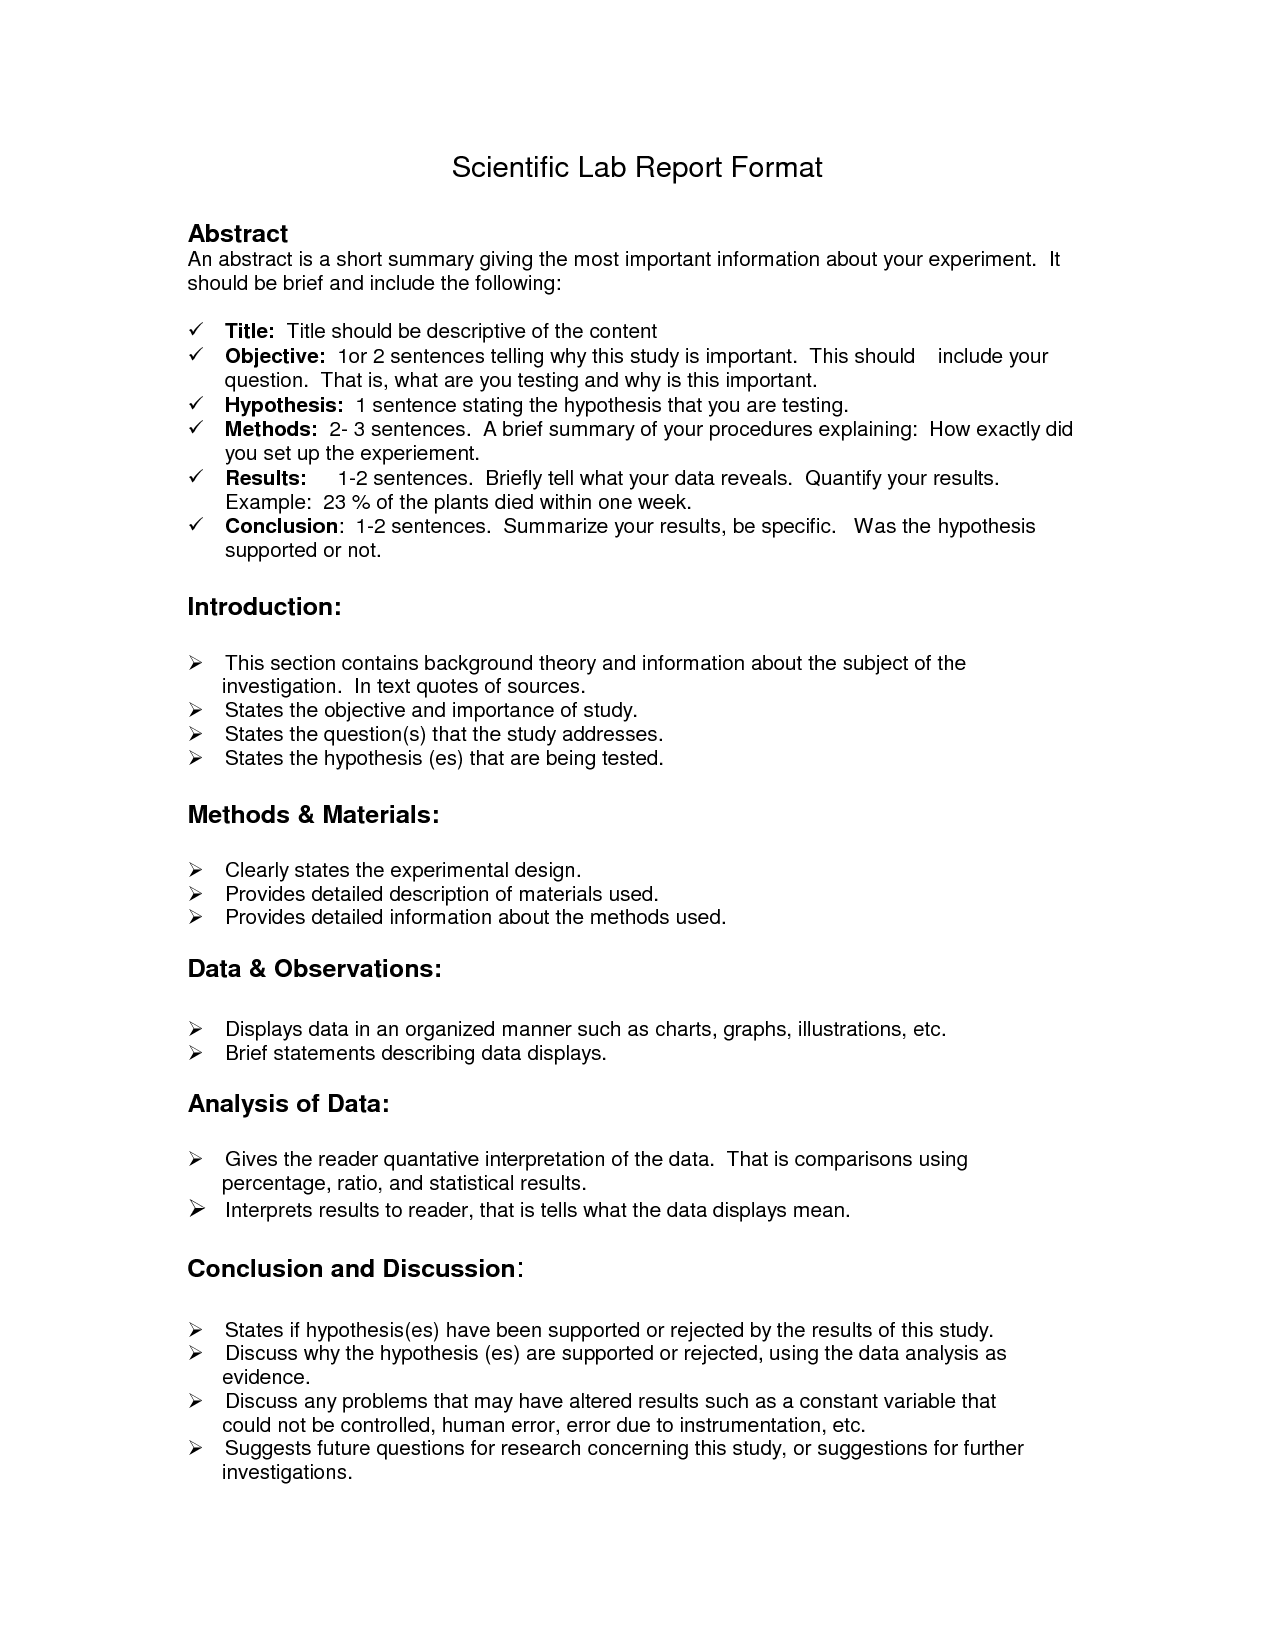 Lab Report Format Doc | Environmental Science Lessons | Pinterest ...